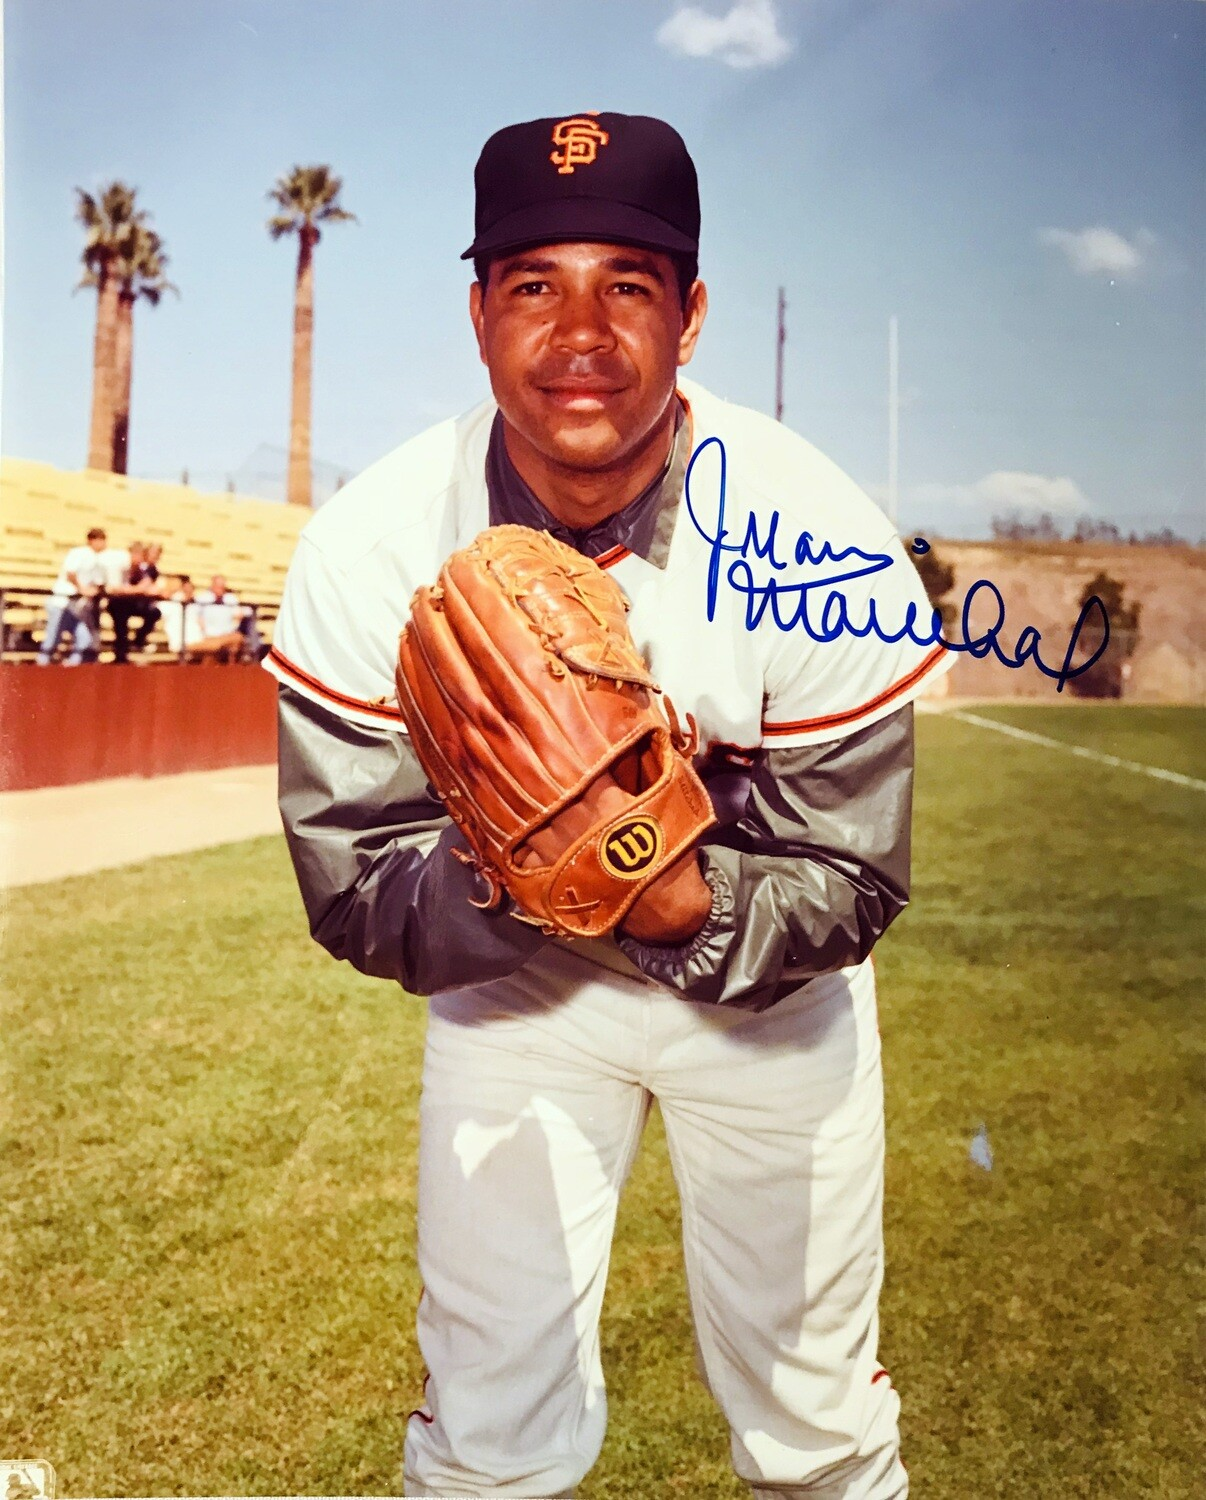 Juan Marichal San Francisco Giants MLB Autographed 8x10 Photo (w/ Certificate of Authenticity)